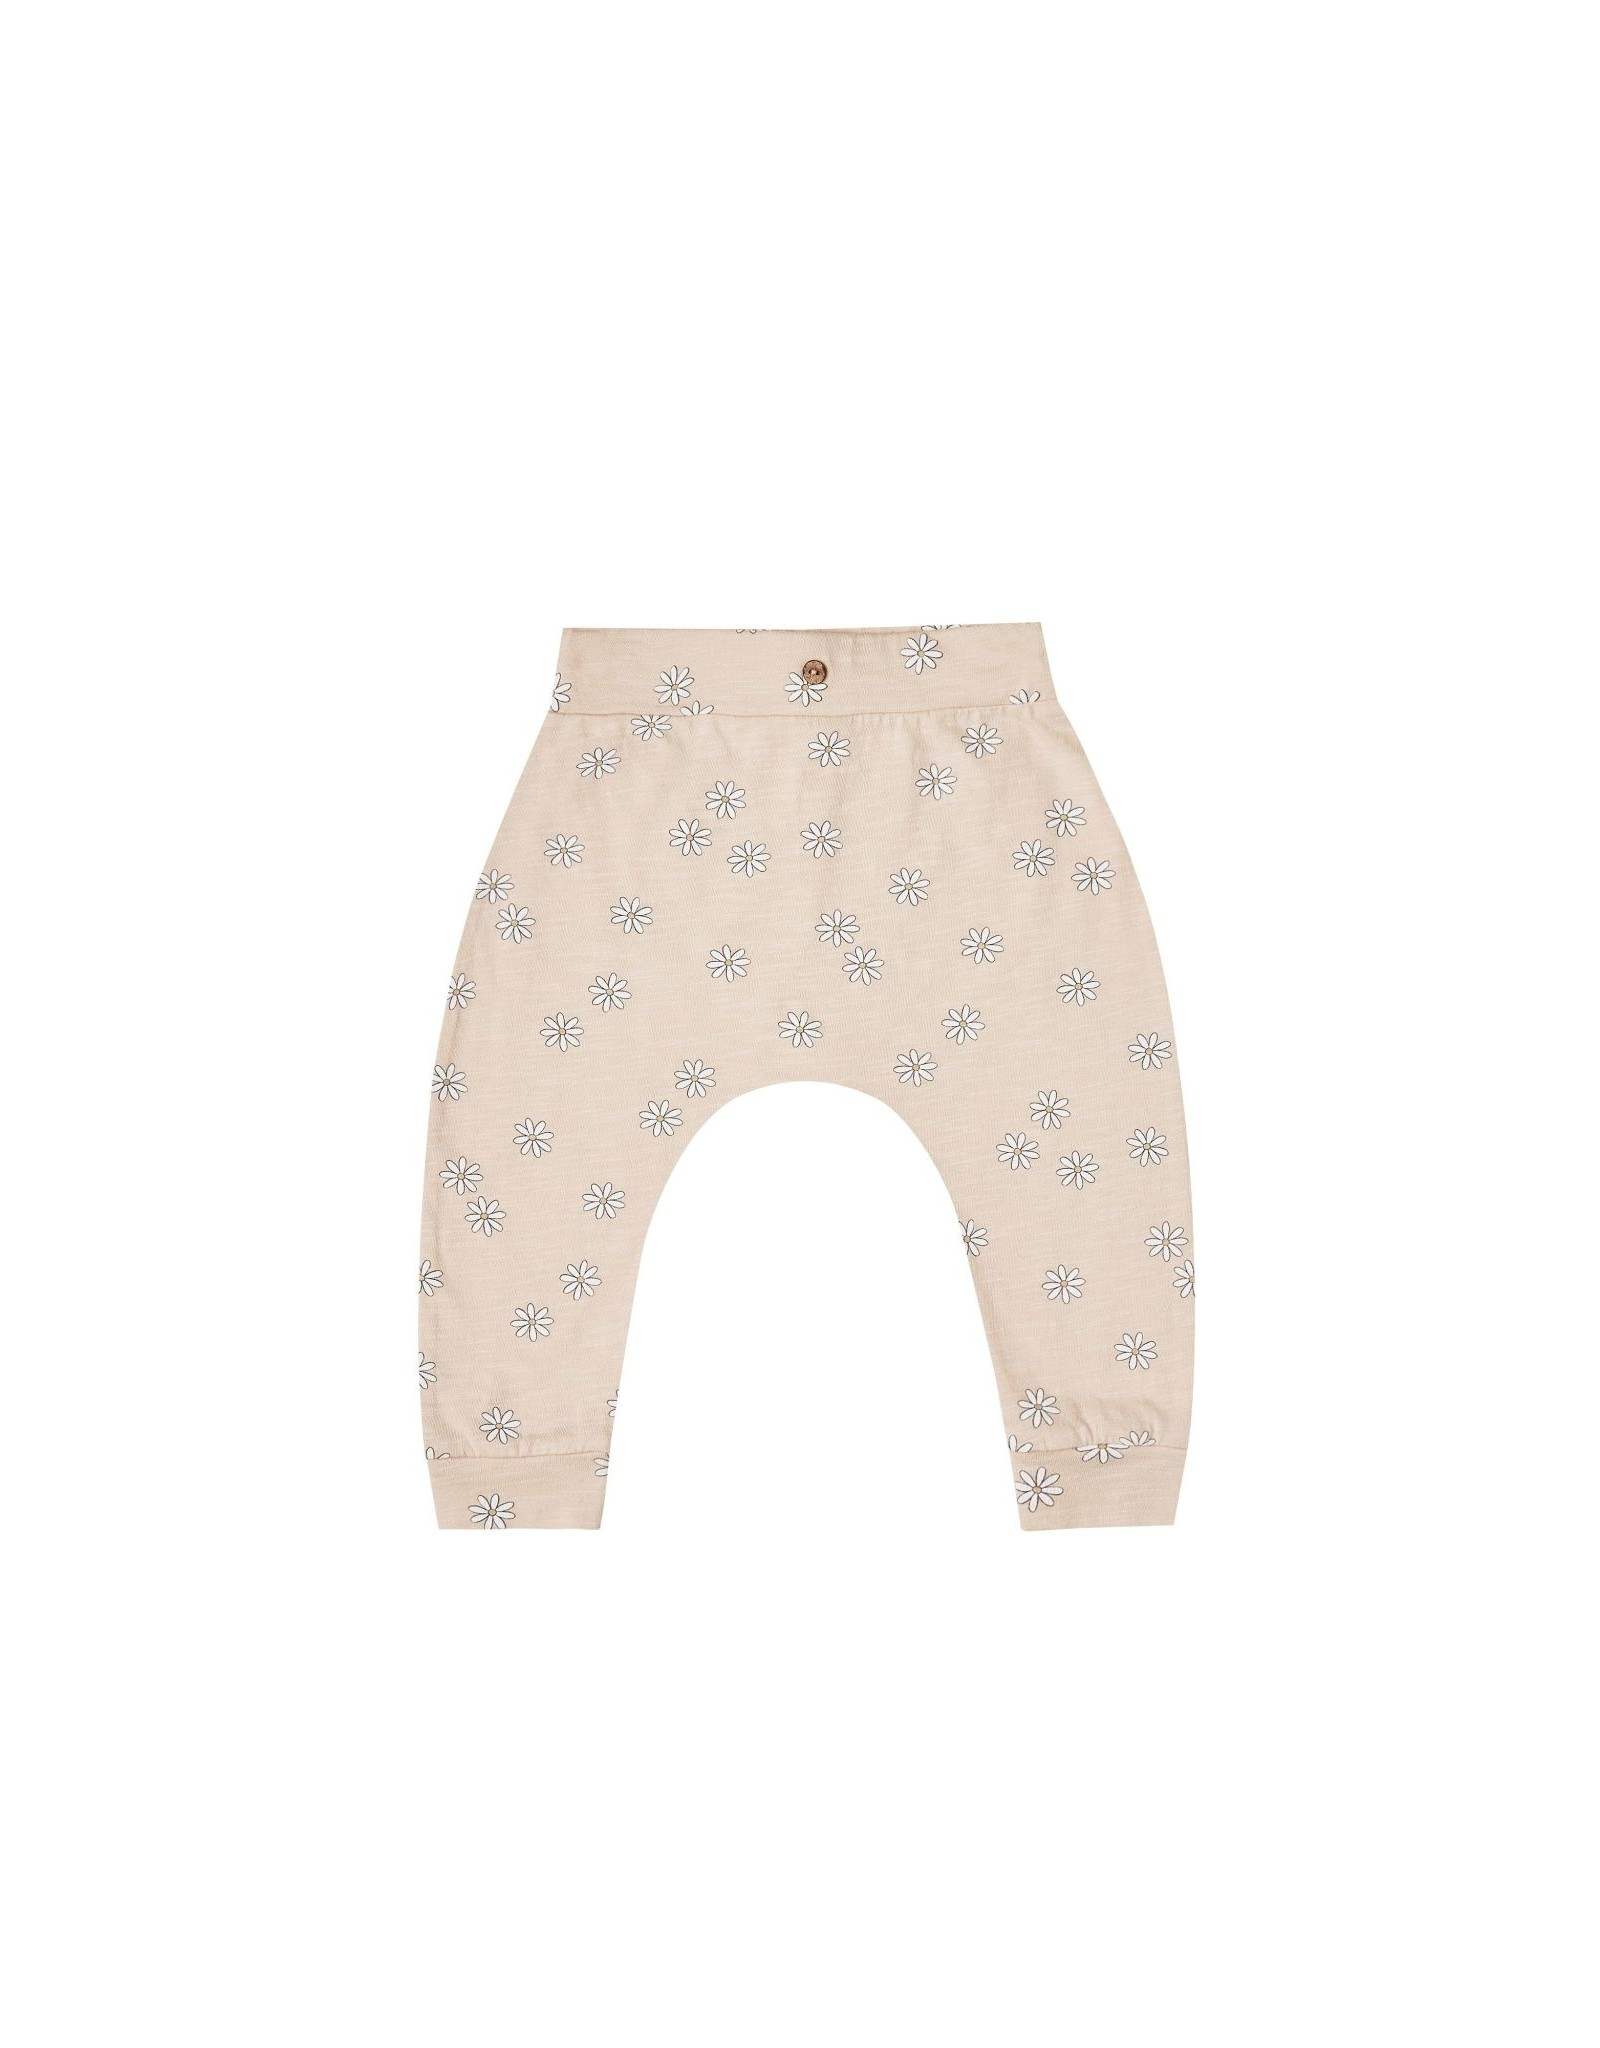 Rylee and Cru daisy slouch pant